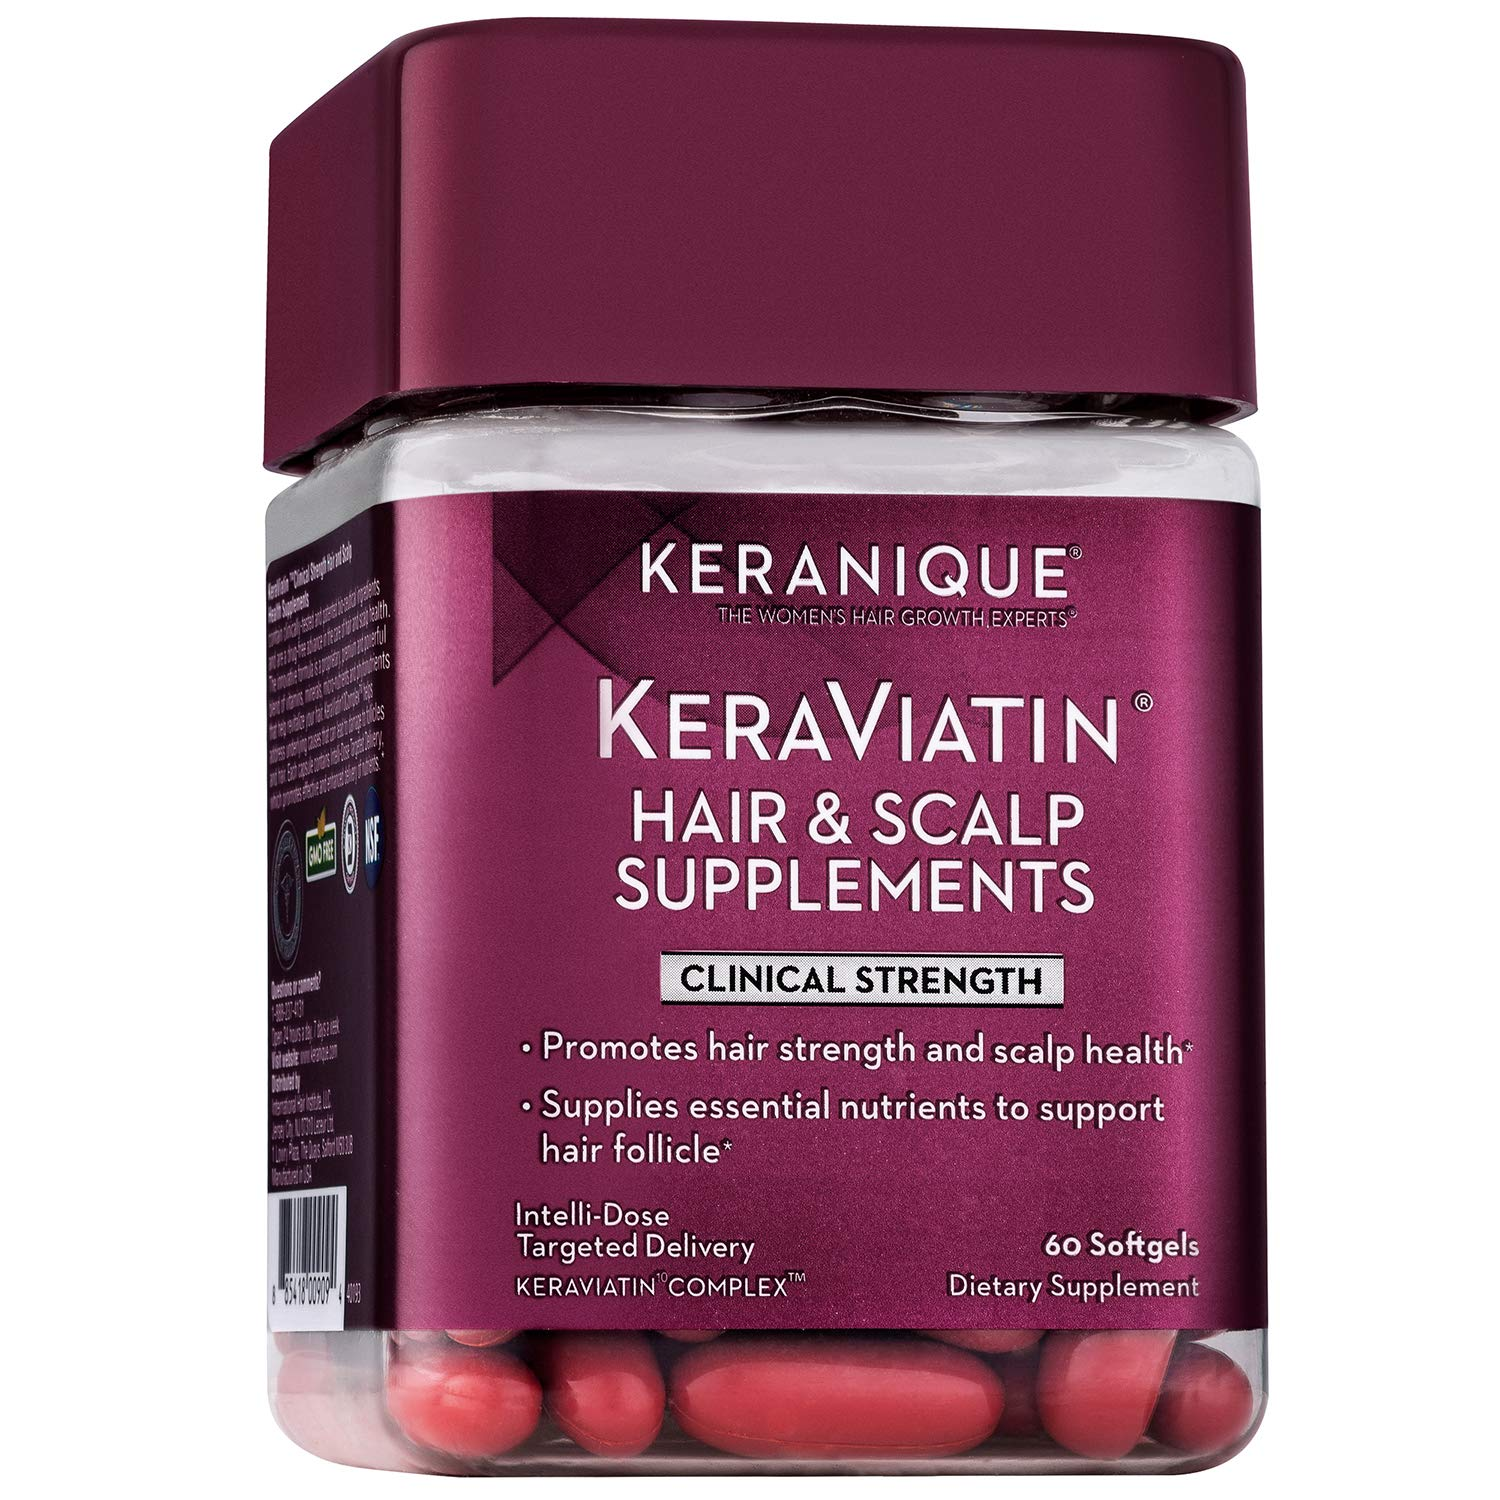 Keranique KeraViatin Hair & Scalp Health Supplement, Clinical Strength, Biotin, Vitamin B, 60 Softgels